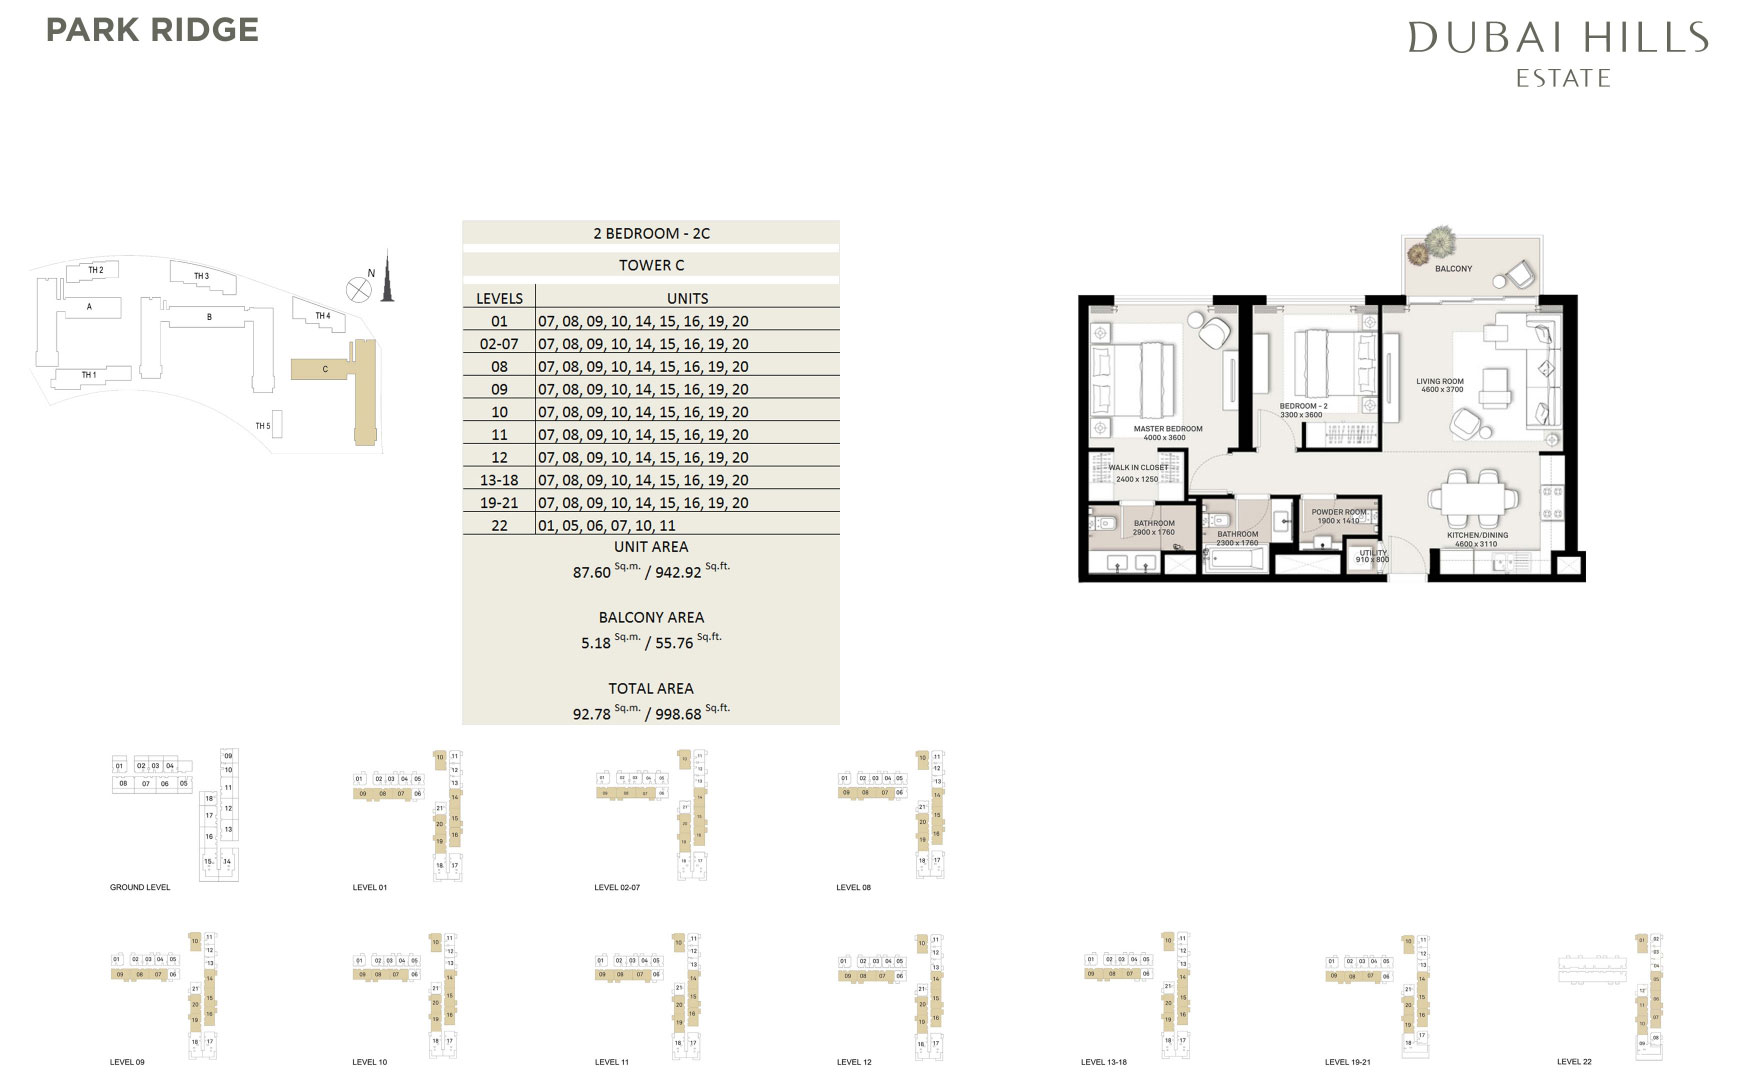 2 Bedroom Tower C 998 68sqft